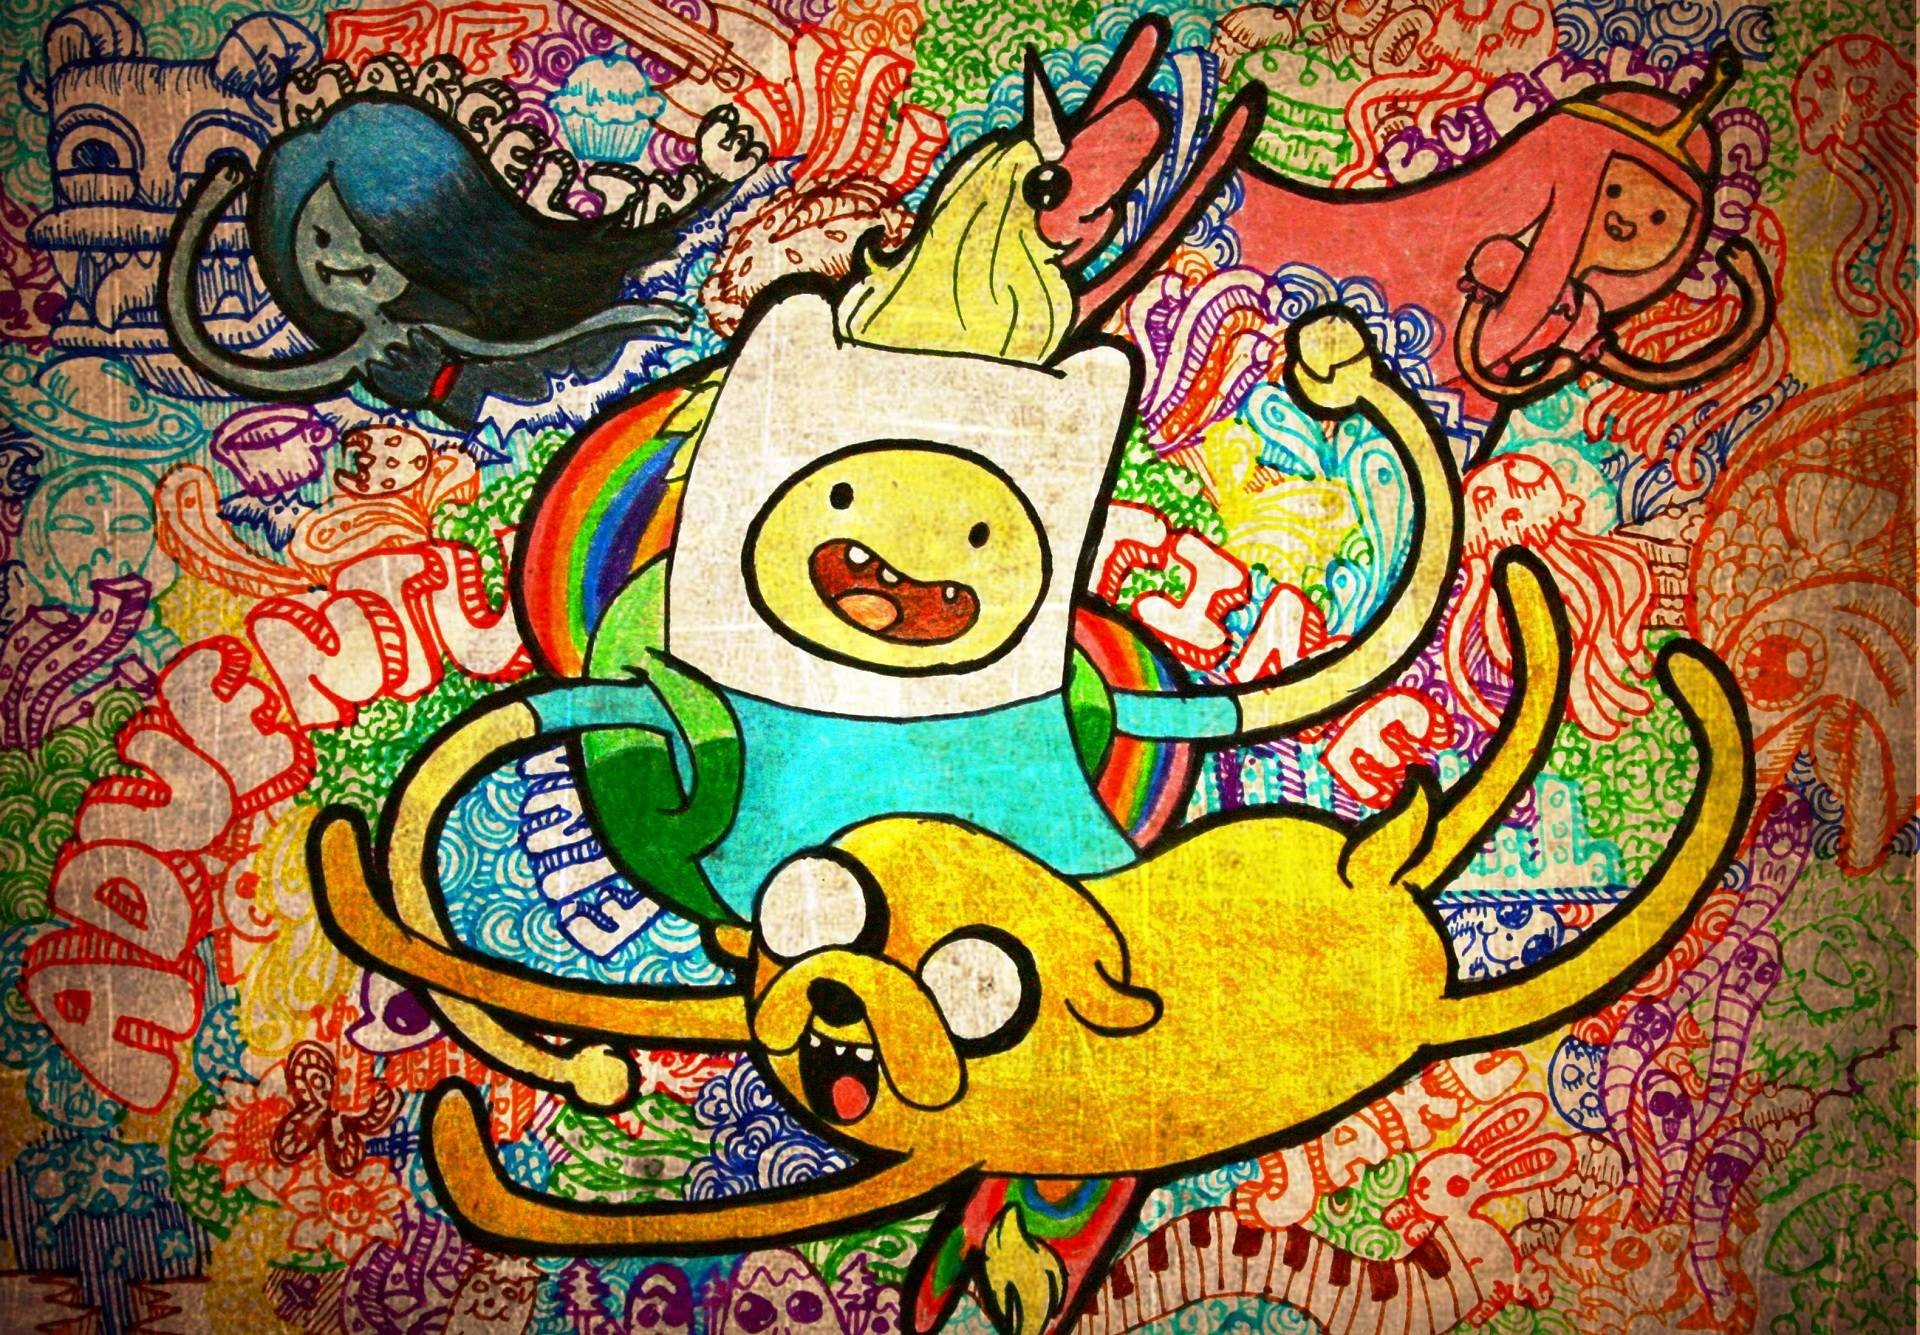 1920x1335 Adventure Time Hd Wallpaper For Iphone